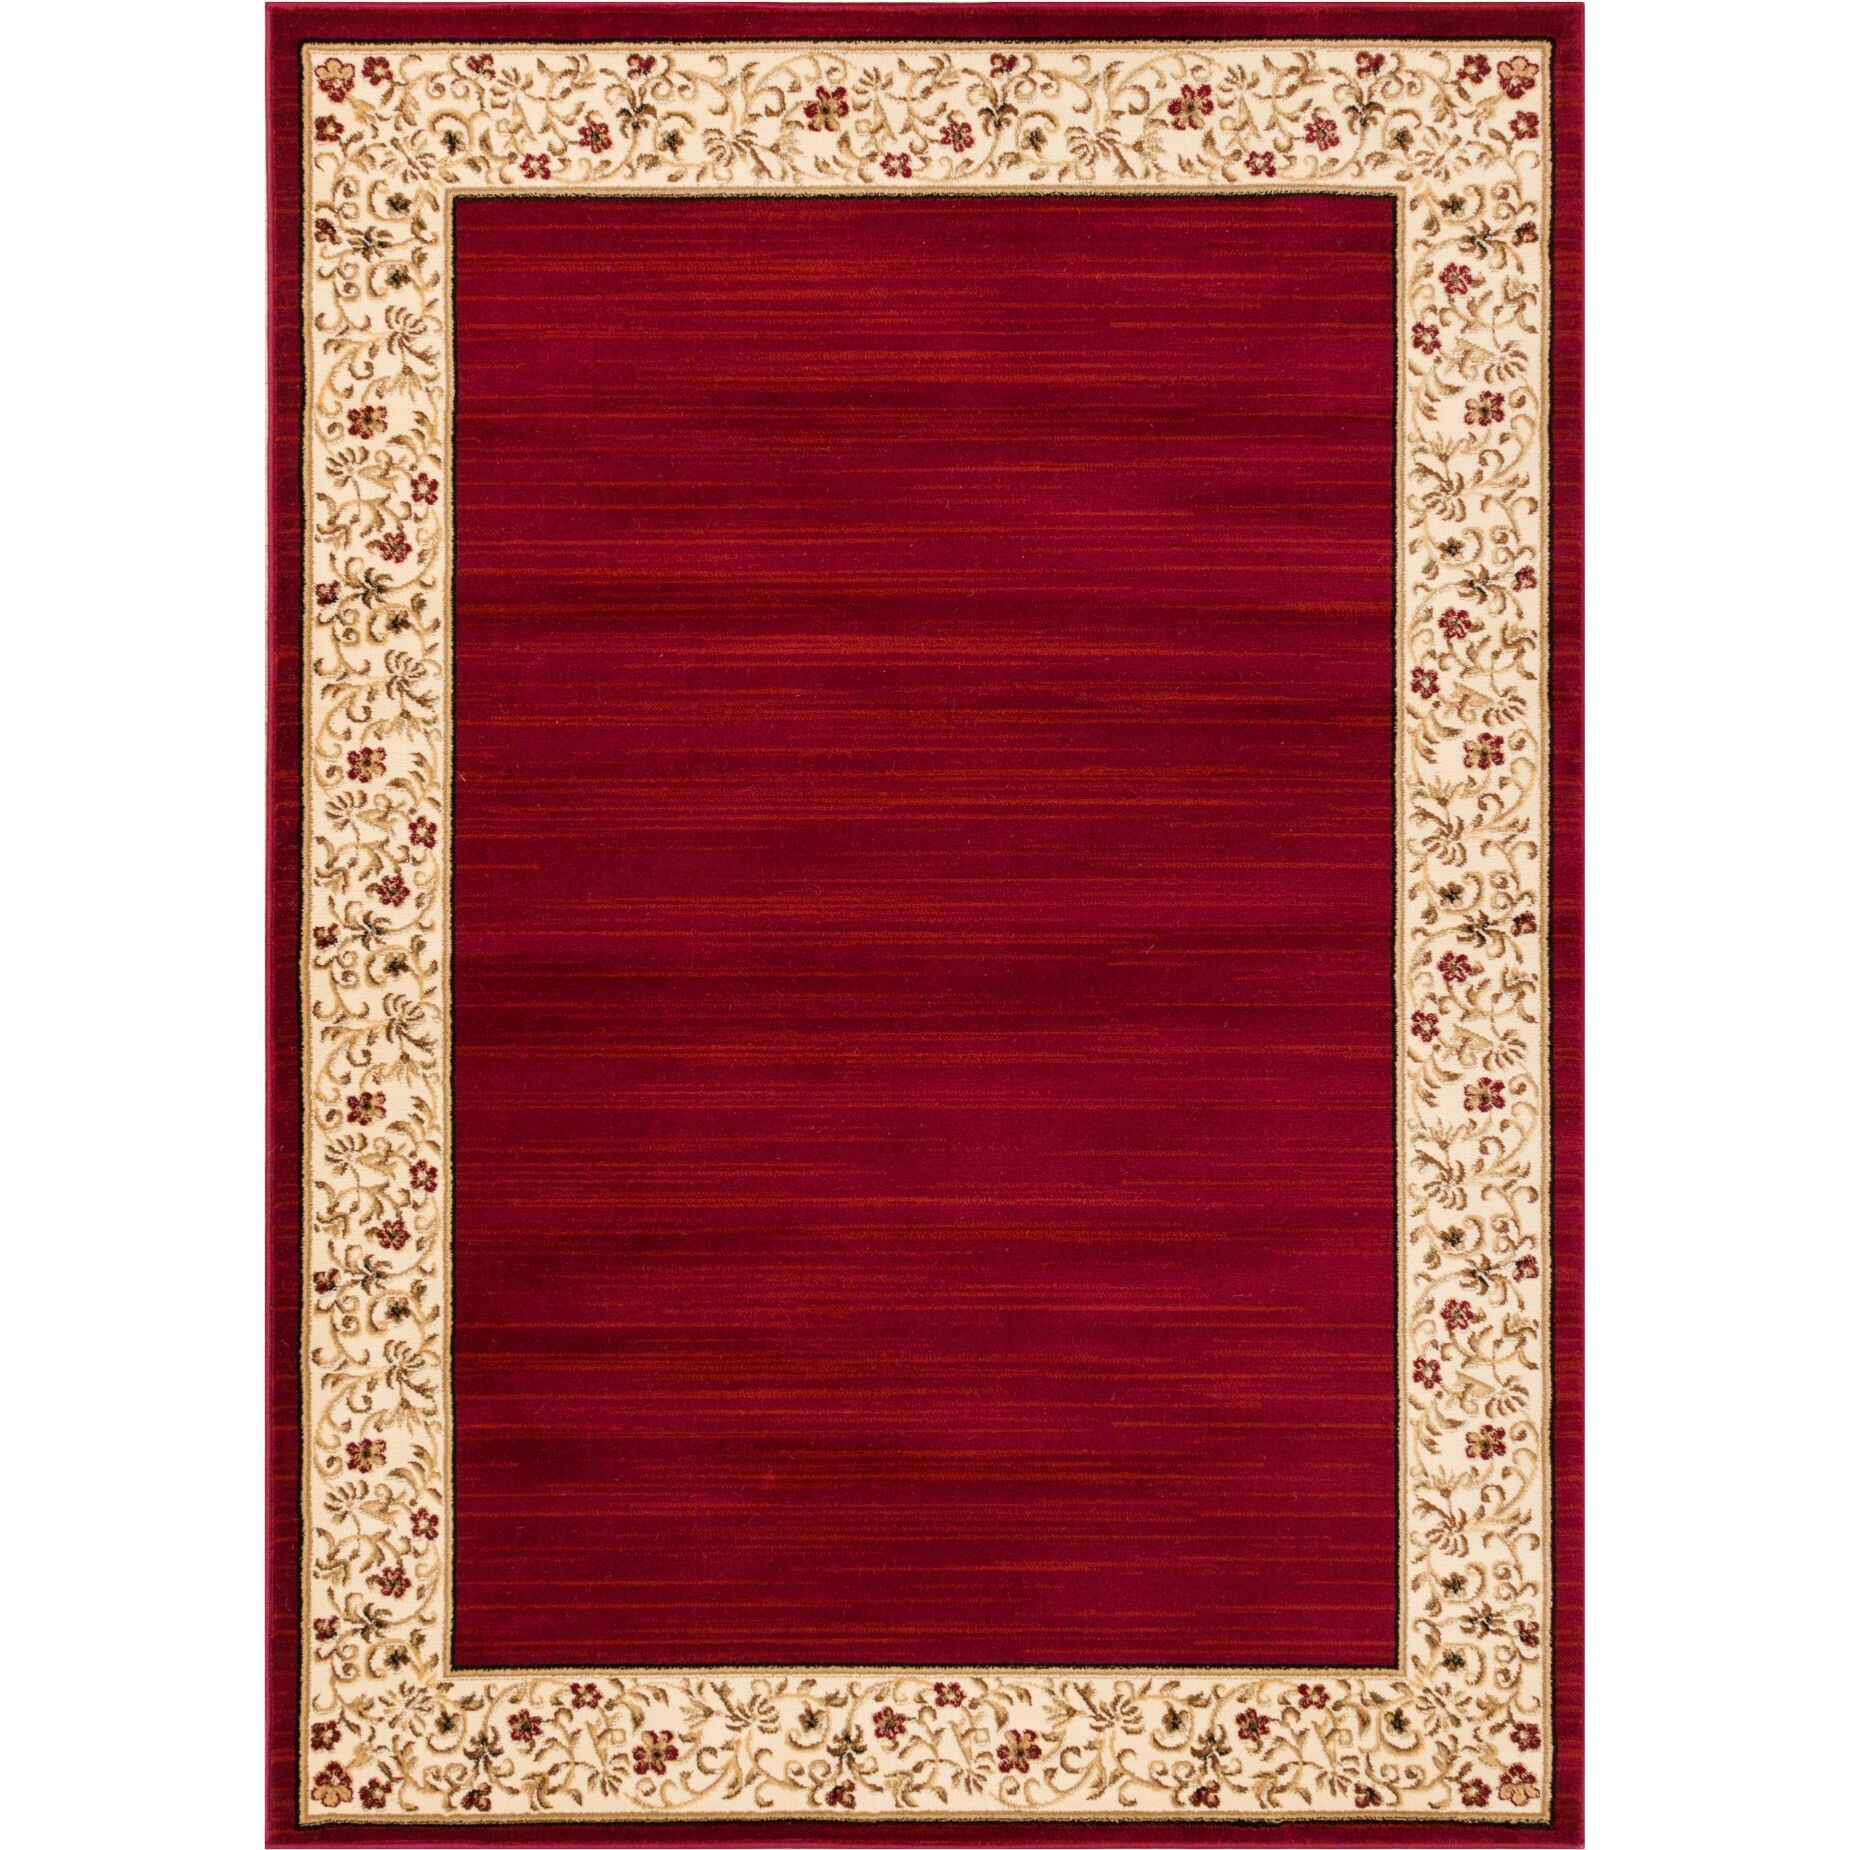 Well woven barclay terrazzo border red floral area rug for Red floral area rug